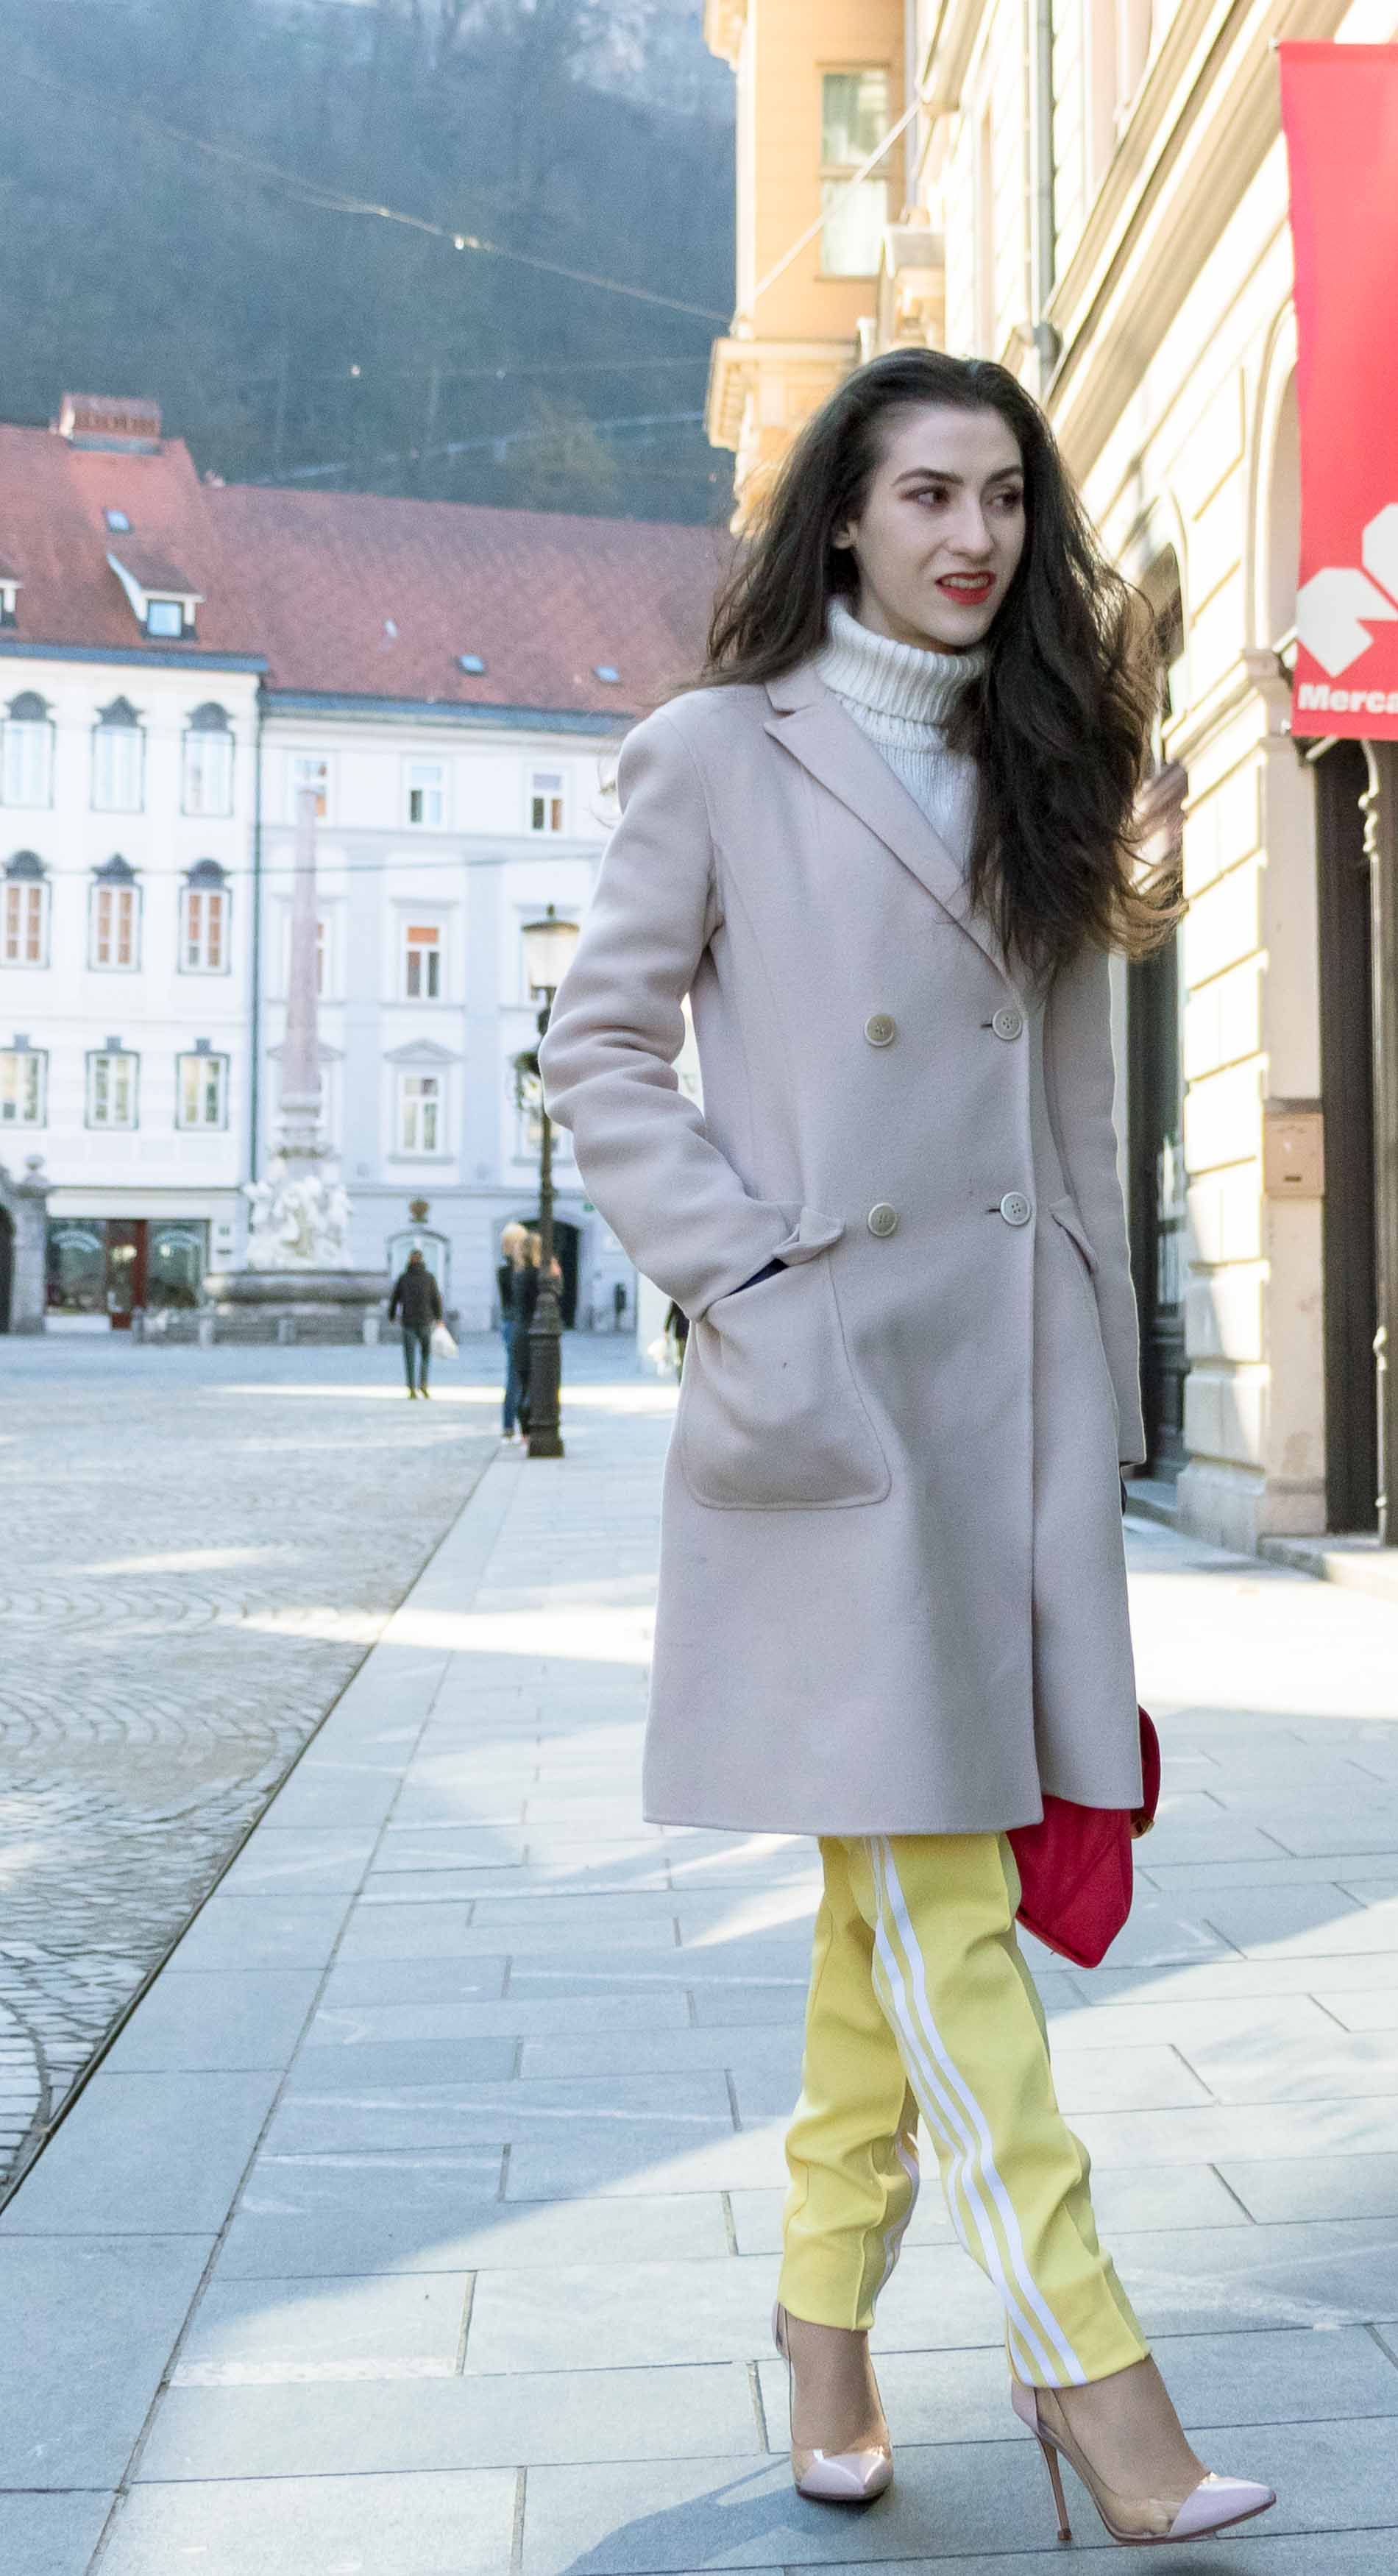 Fashion Blogger Veronika Lipar of Brunette from Wall Street dressed in yellow track pants with white stripes from Adidas, white turtleneck knit sweater, off-white pastel double breasted coat from Weekend Max Mara, blush powder transparent plexi shoes from Gianvito Rossi, pink top handle bag from See by Chloe while walking down the street in Ljubljana